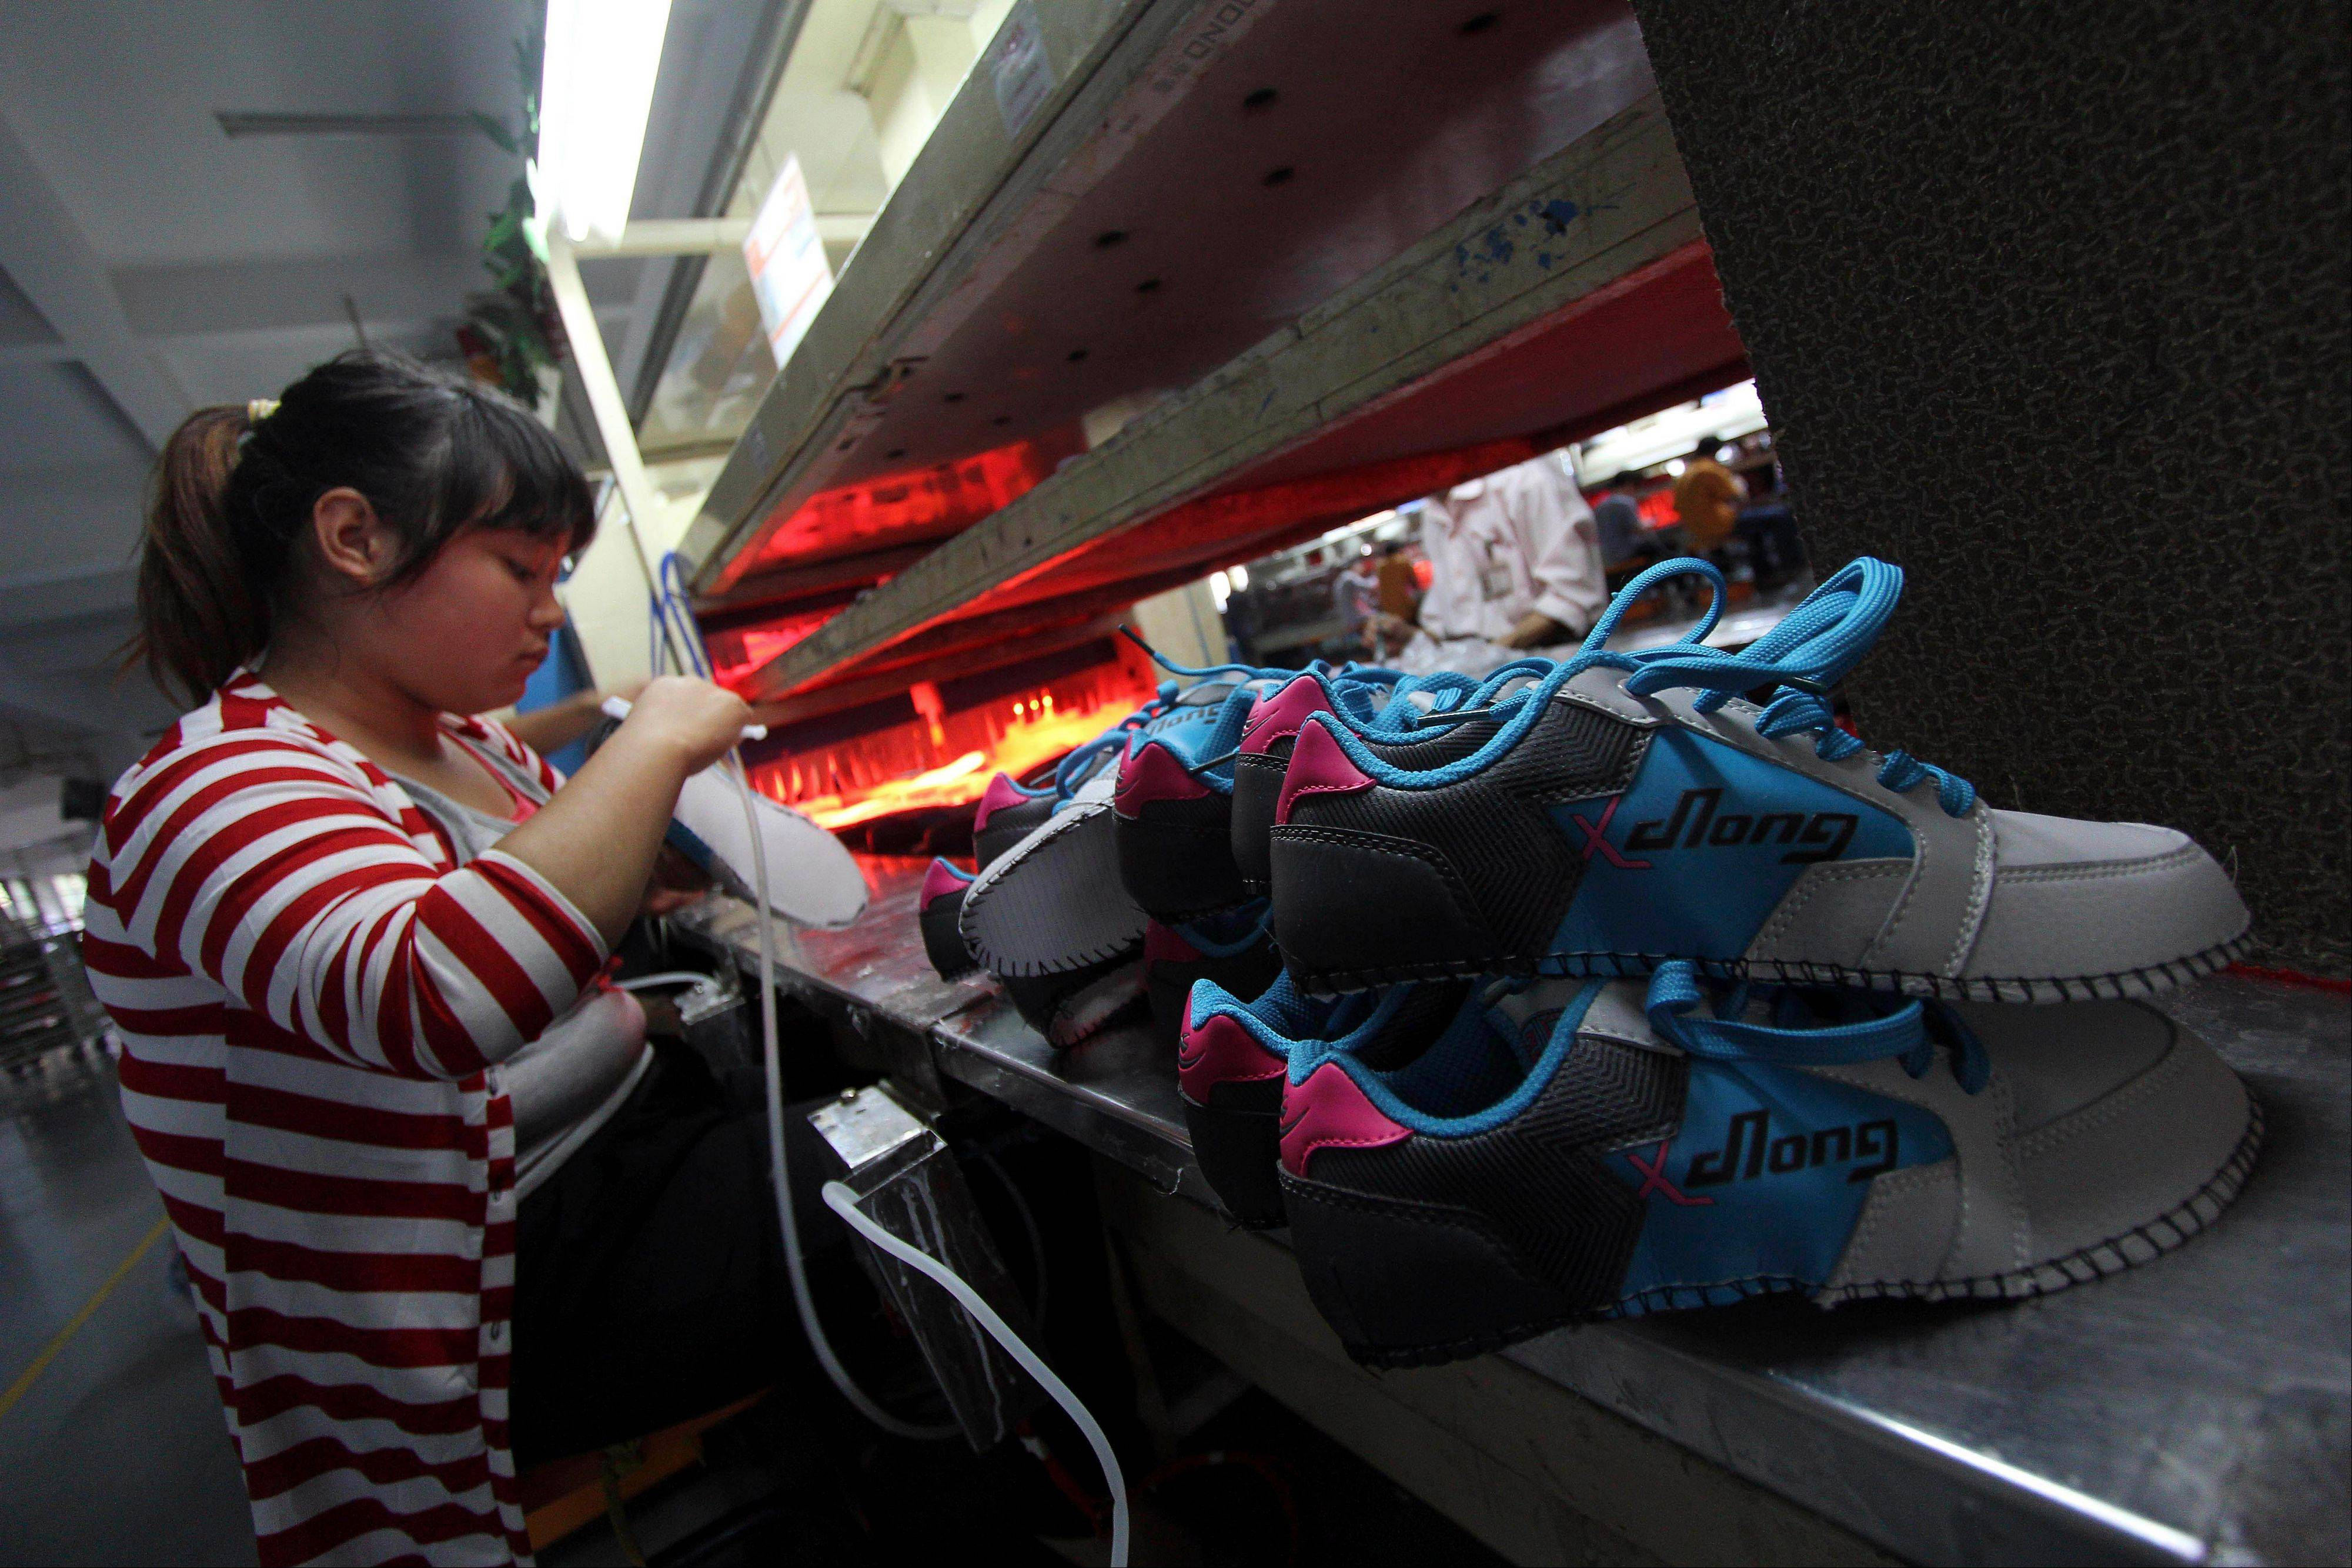 China�s auto sales, consumer spending and factory output improved in October in a new sign of economic recovery as the Communist Party prepared to install a new generation of leaders. Growth in factory output accelerated to 9.6 percent over a year earlier from the previous month�s 9.2 percent, the government reported Friday.